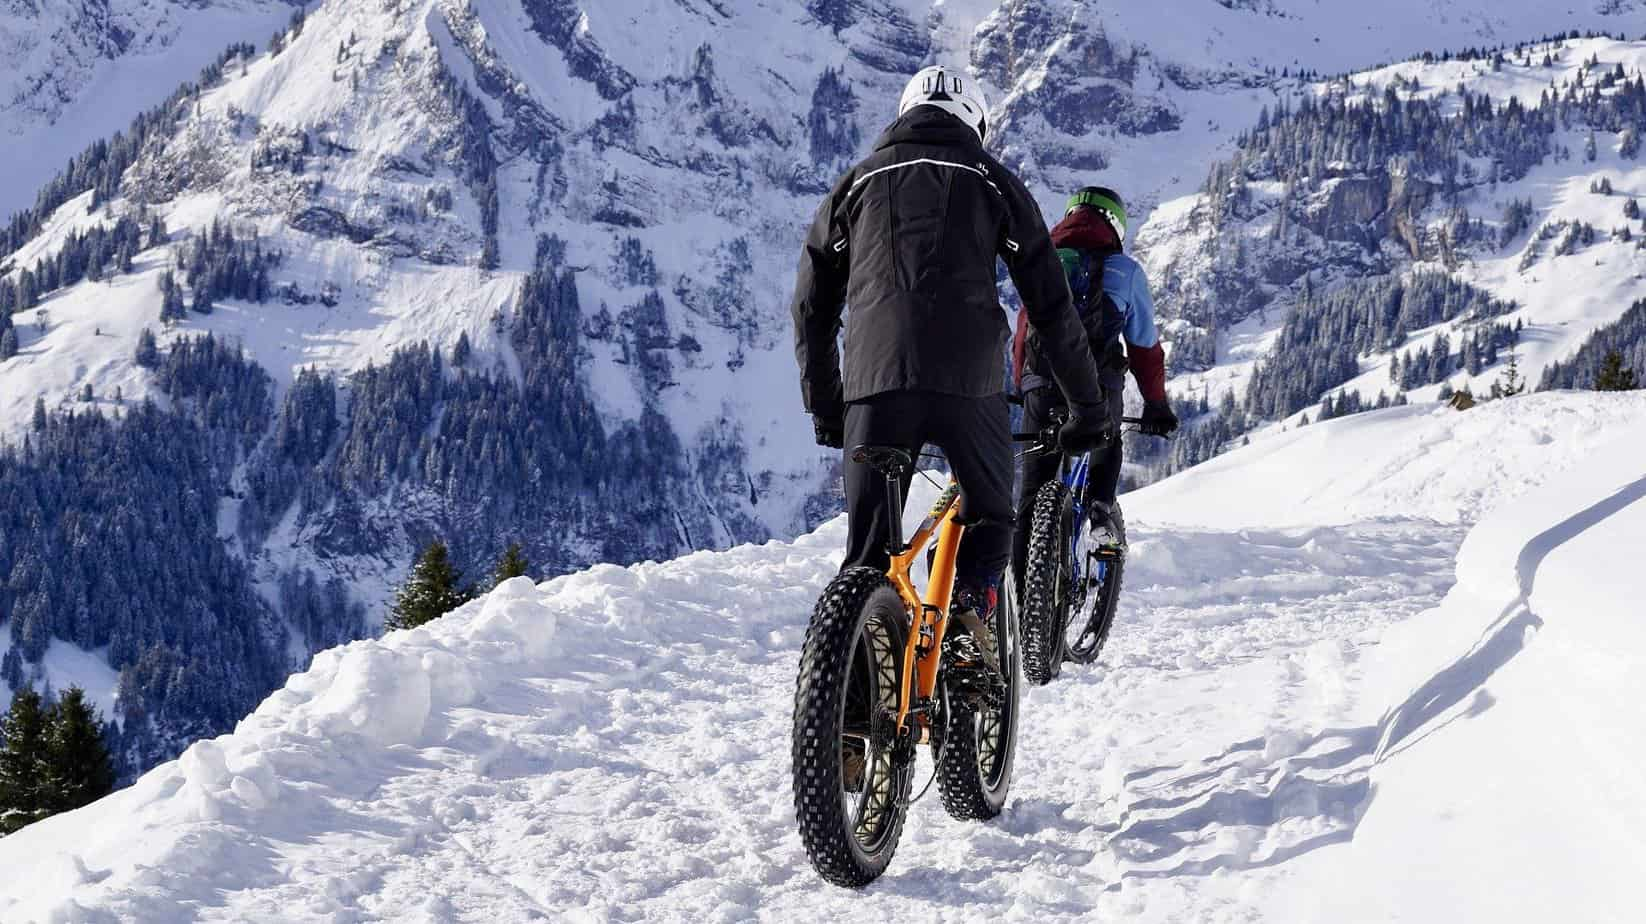 How To Safely Ride Your Bike In Winter